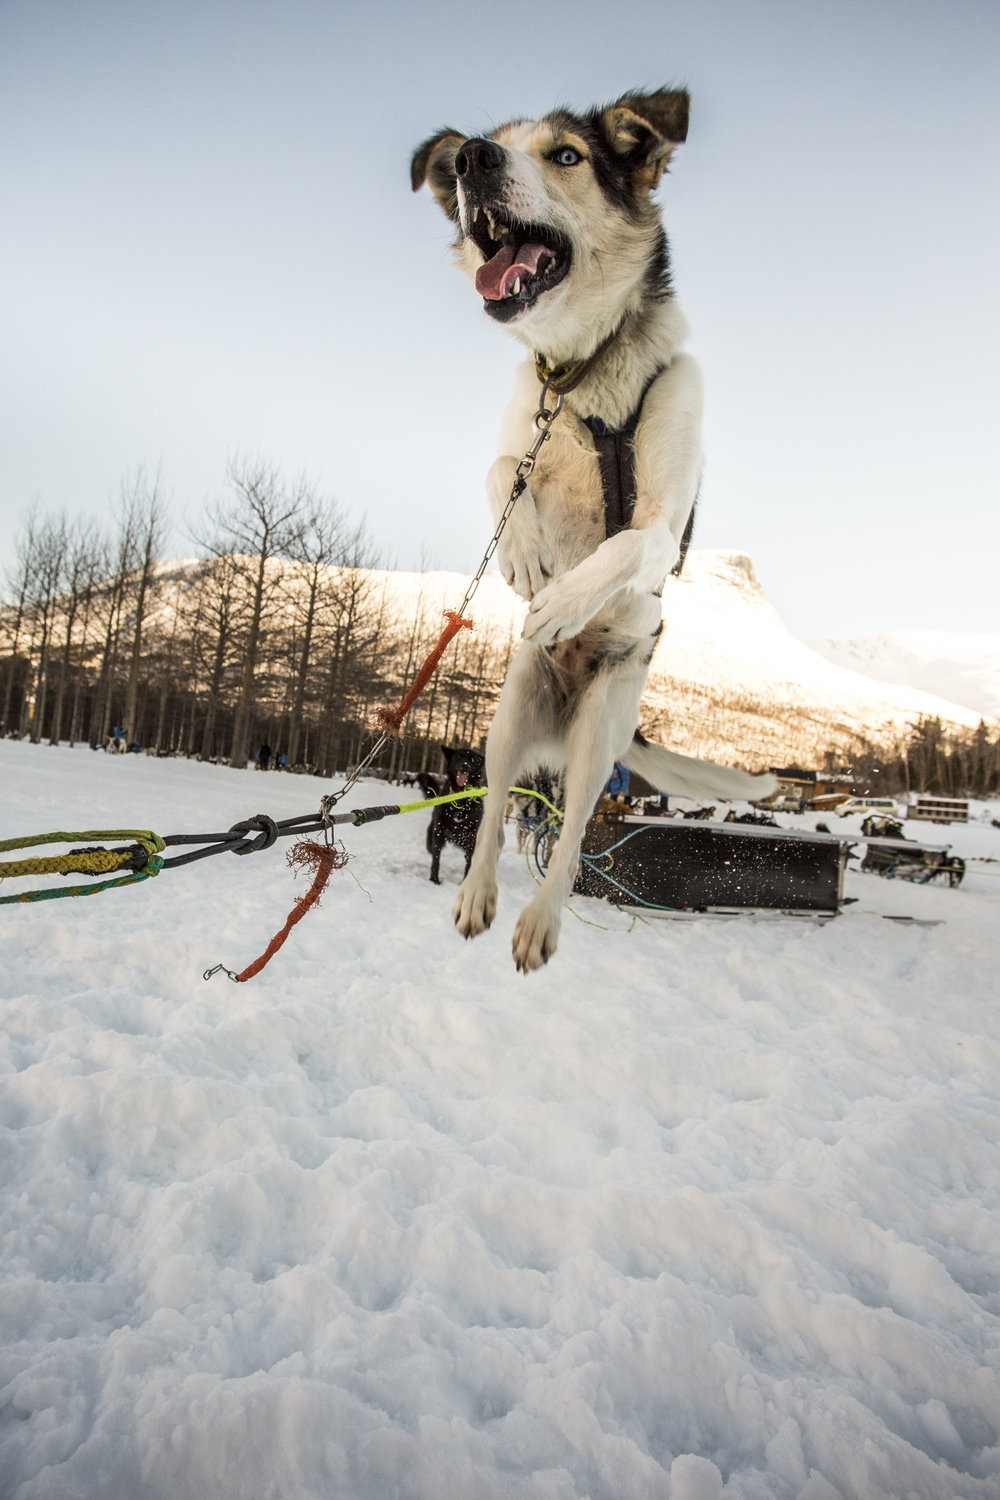 It's only 7:00 a.m. on Day 3 of Fjällräven Polar, but the dogs are already raring to go. (Photo by Håkan Wike for Fjällräven International. All rights reserved.)